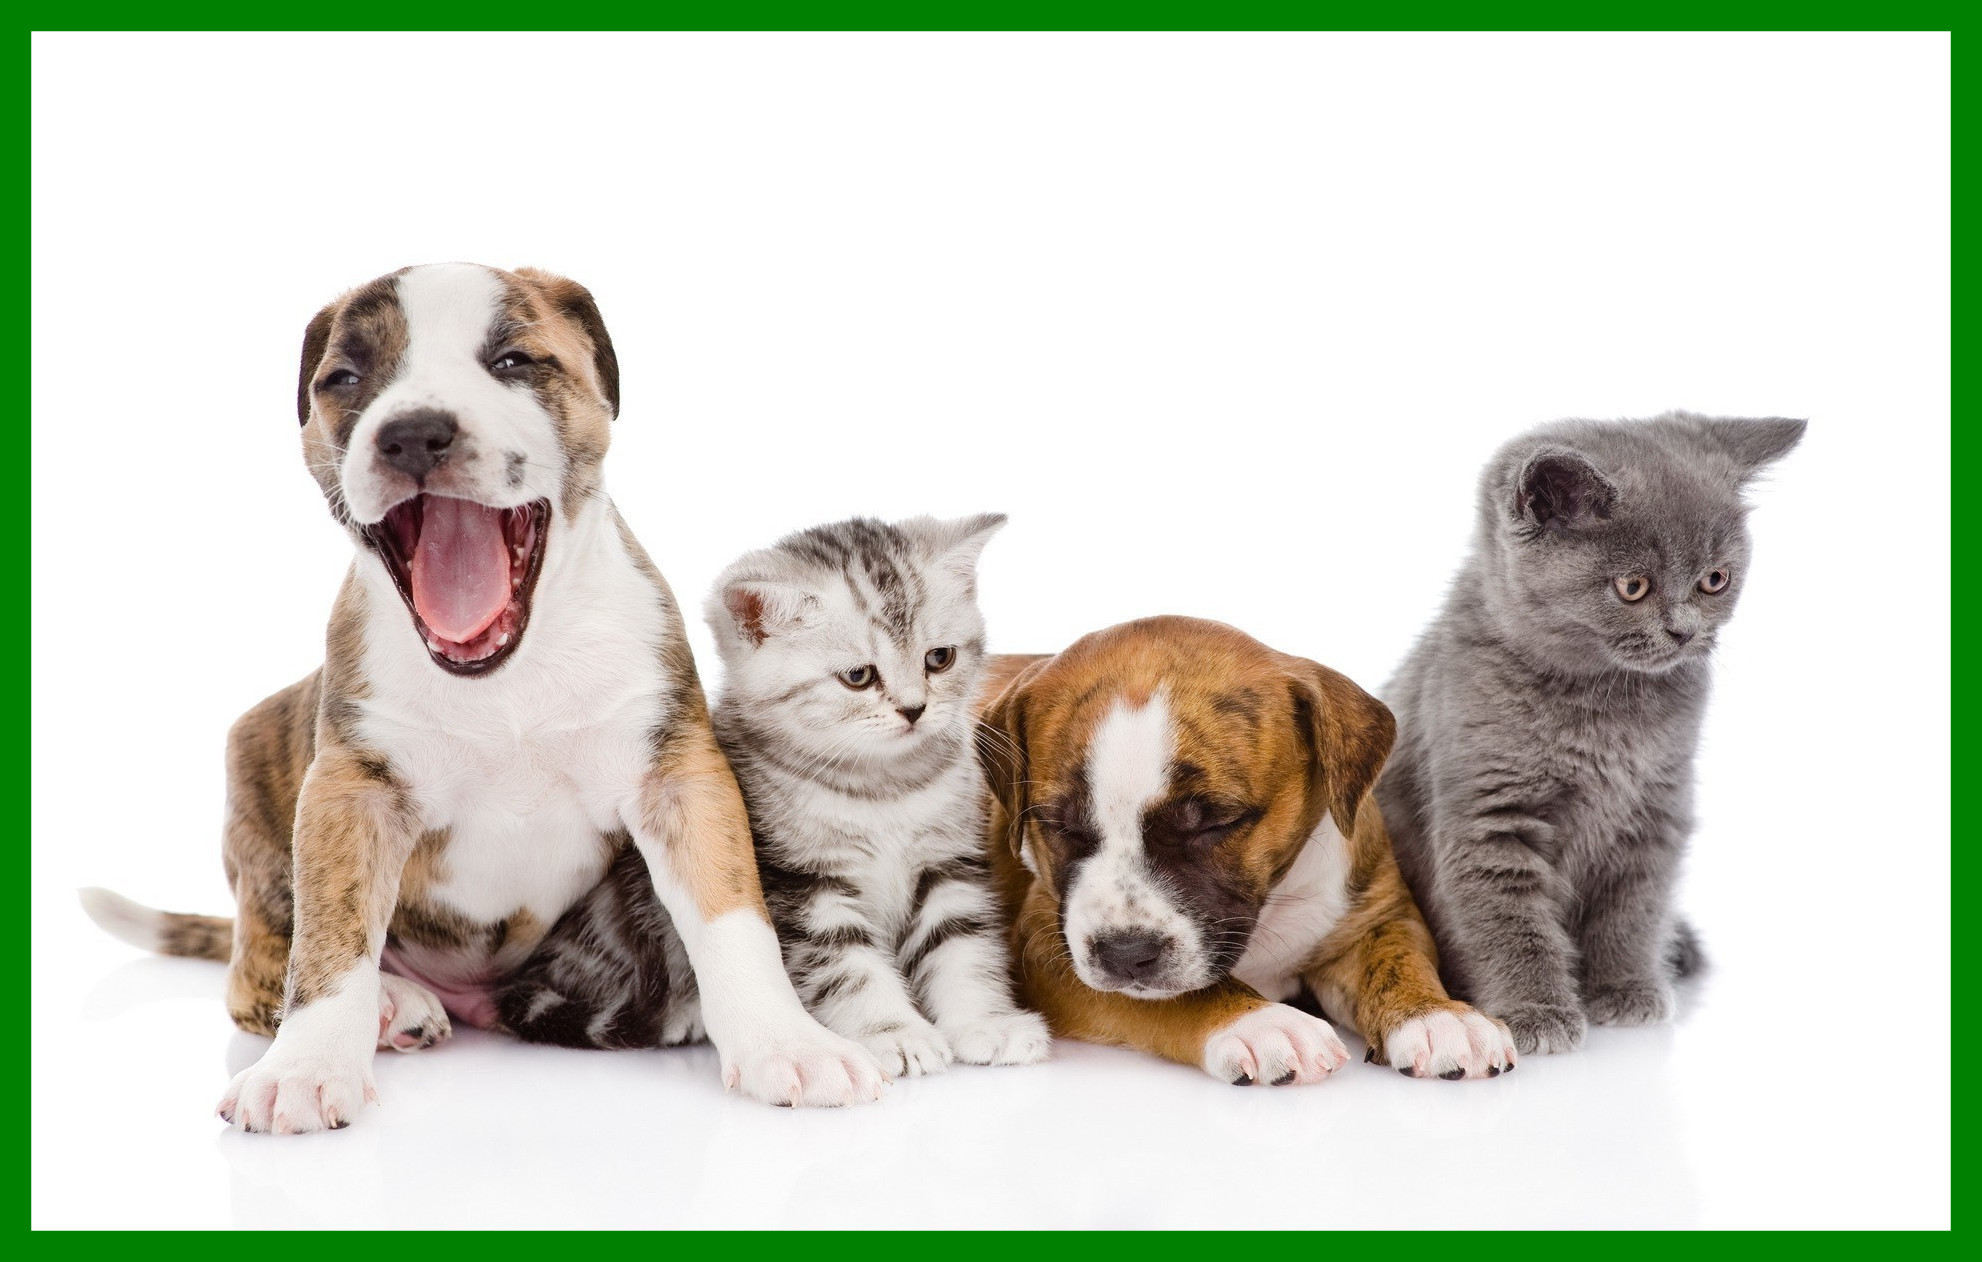 2560x1600 20 Cats And Dogs Wallpapers